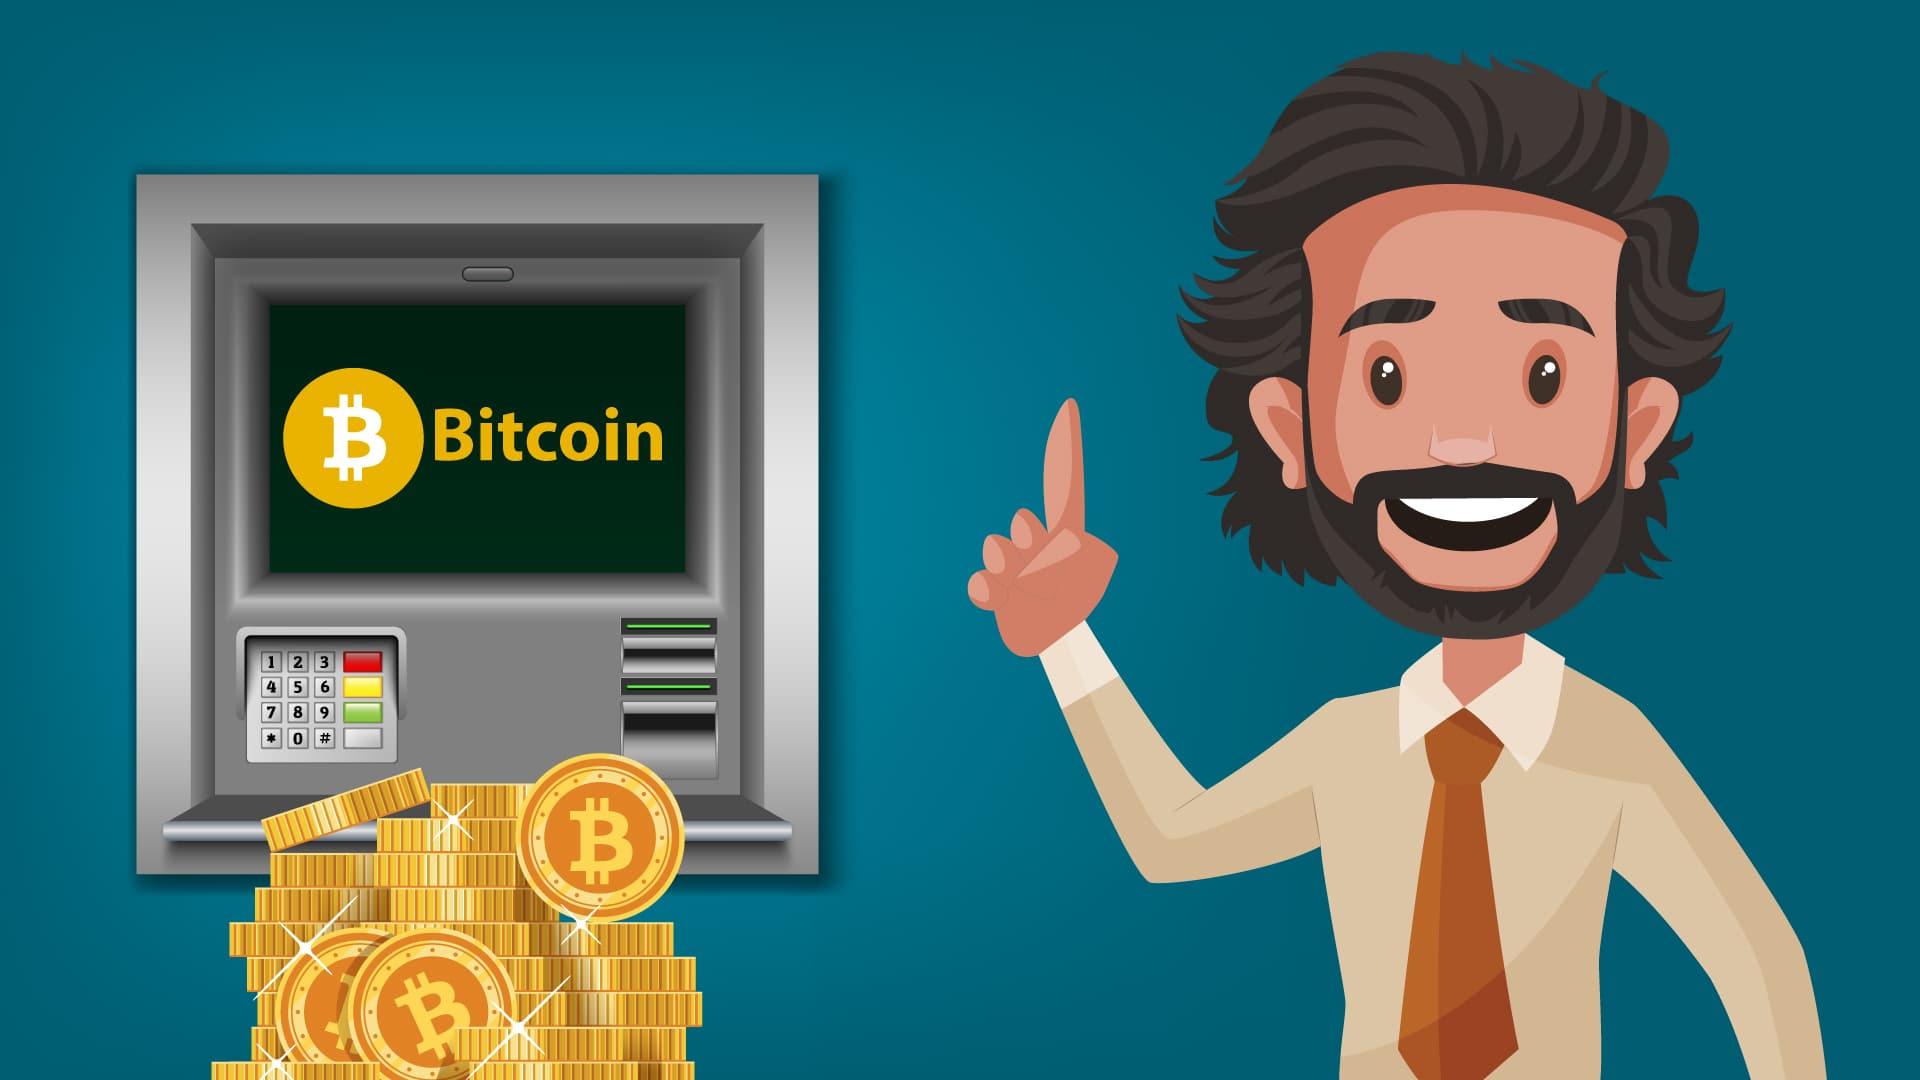 Bitcoin ATM Market Set to Grow Between 2021-2025